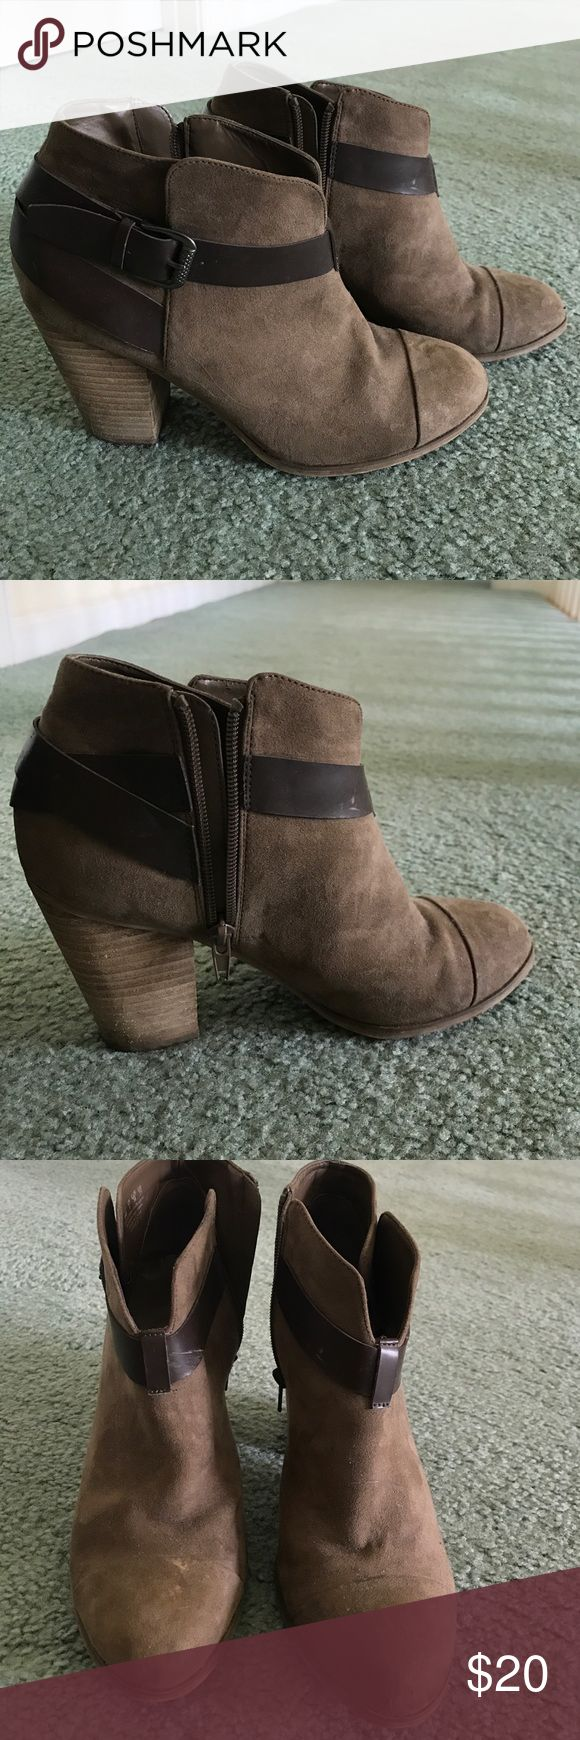 TJ Max Booties TJ Max booties bought in Washington D.C.. Worn once or twice. A few dirt marks but can be easily whipped off. Very comfortable and easy to walk in. Light brown with a darker brown strap TJ Max Shoes Heeled Boots